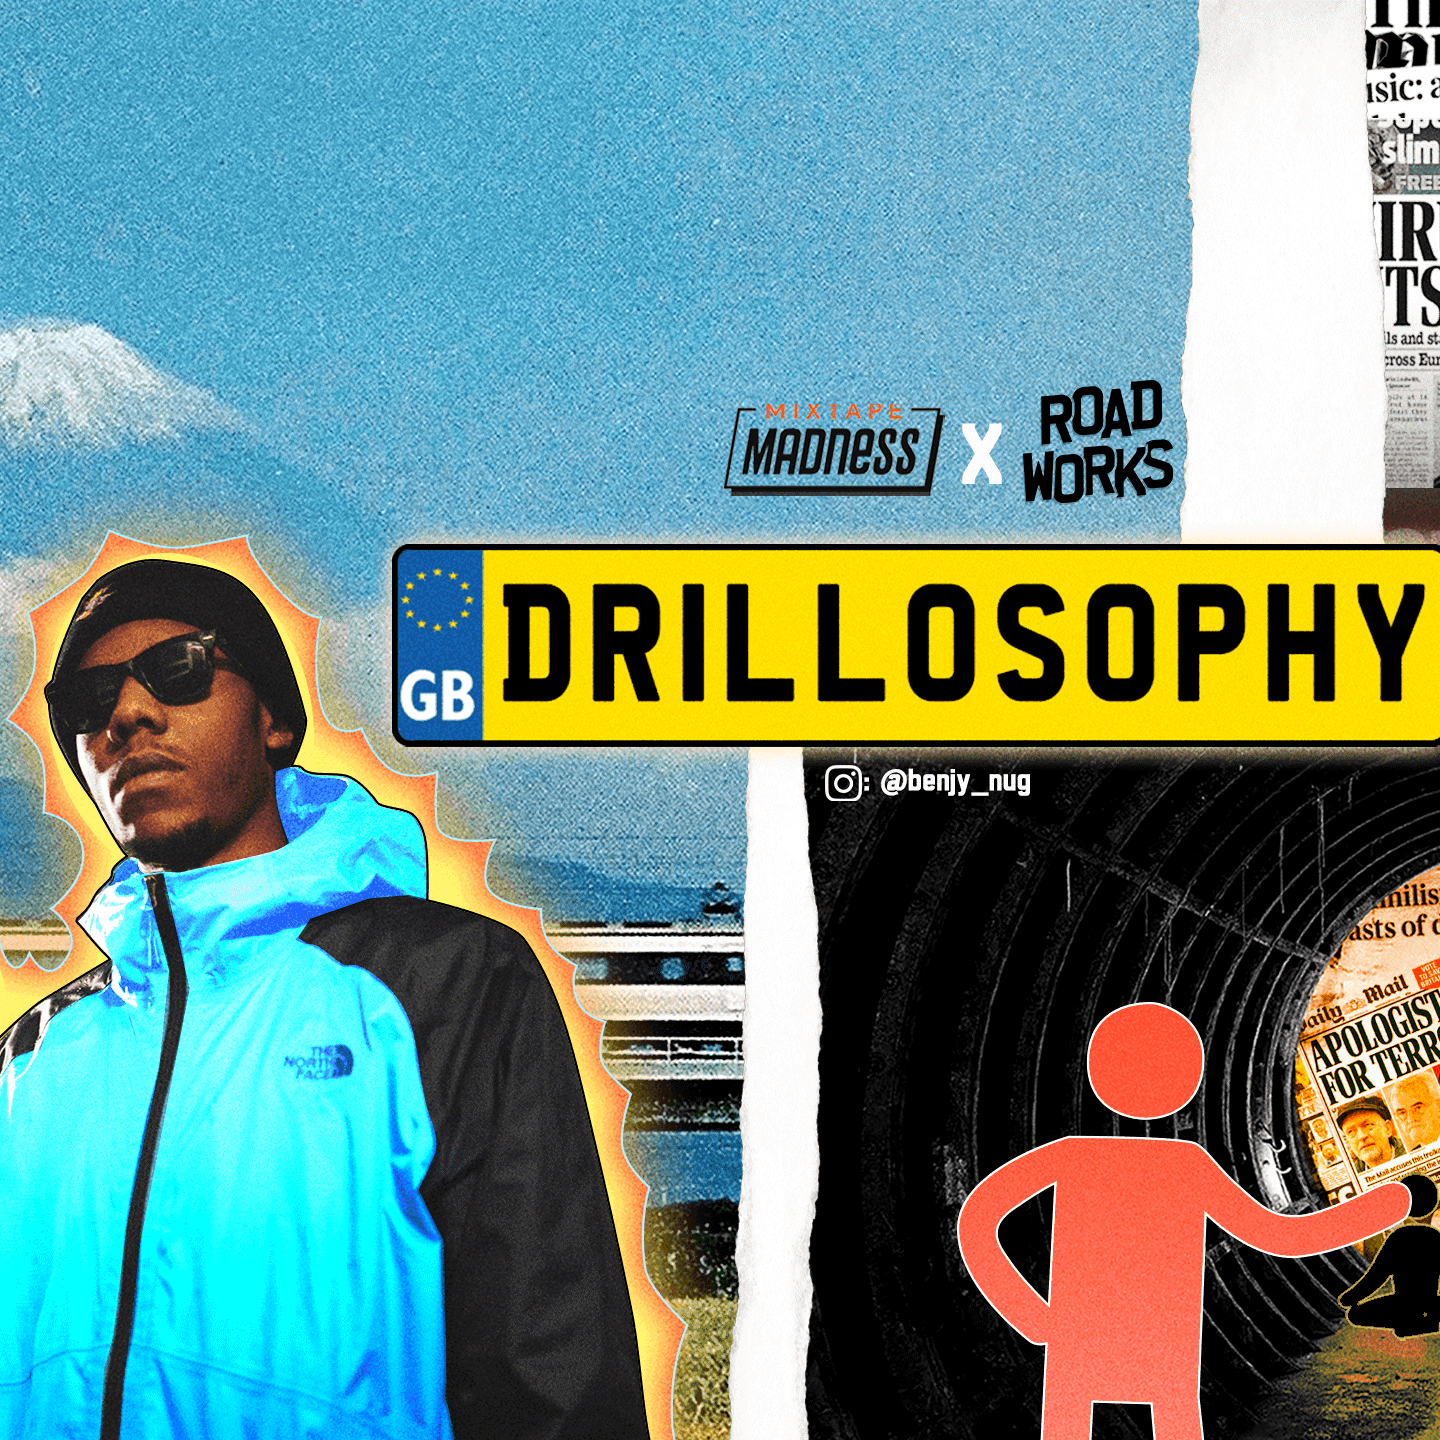 young man standing next to drillosophy sign